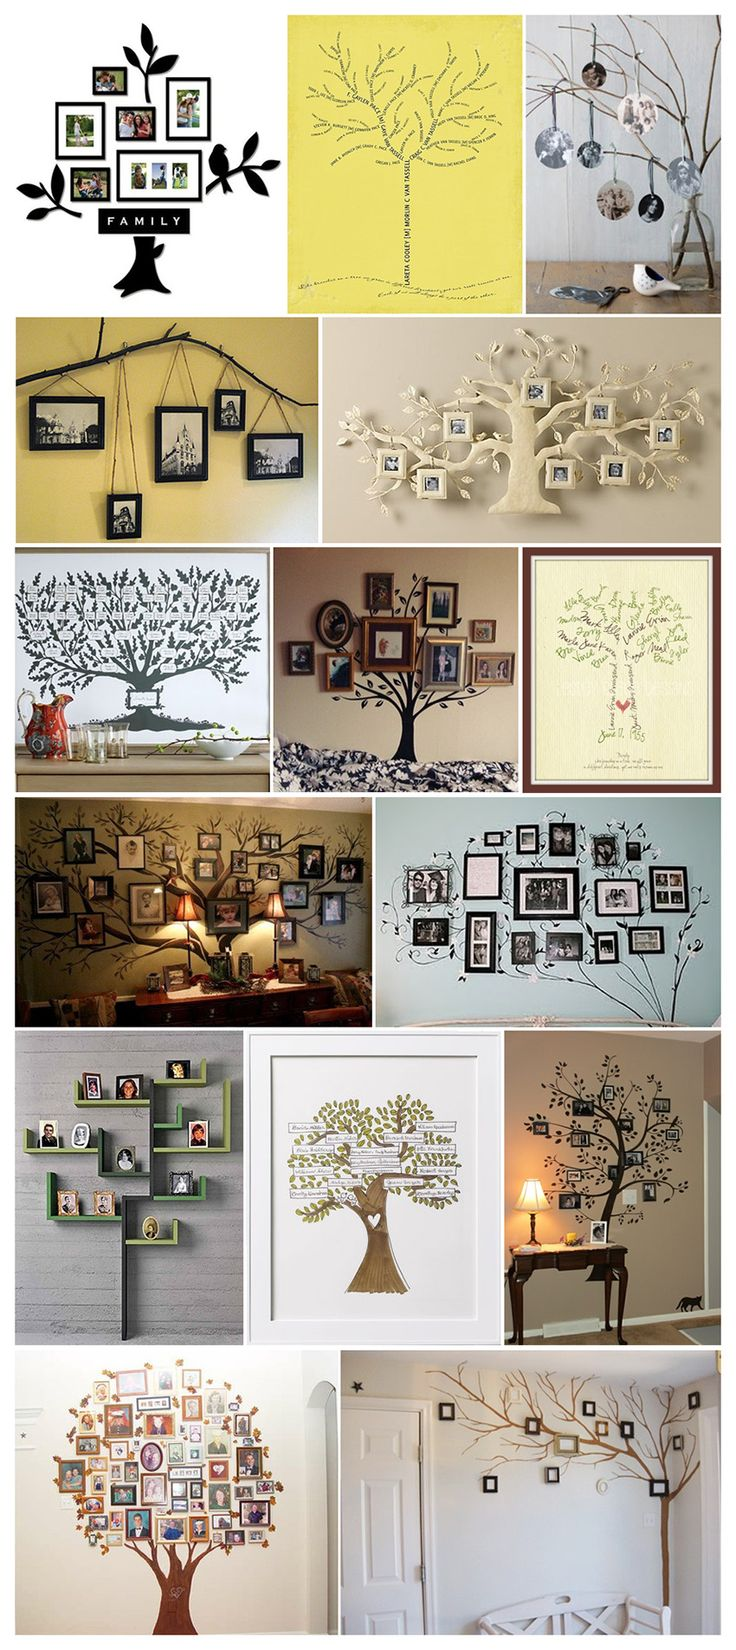 *This is awesome! I've been trying to figure oyt the best way to make one for awhile now! Family Trees Display Inspiration ~ Memories on Display #DisplayGallery #PhotoWall #FamilyTrees